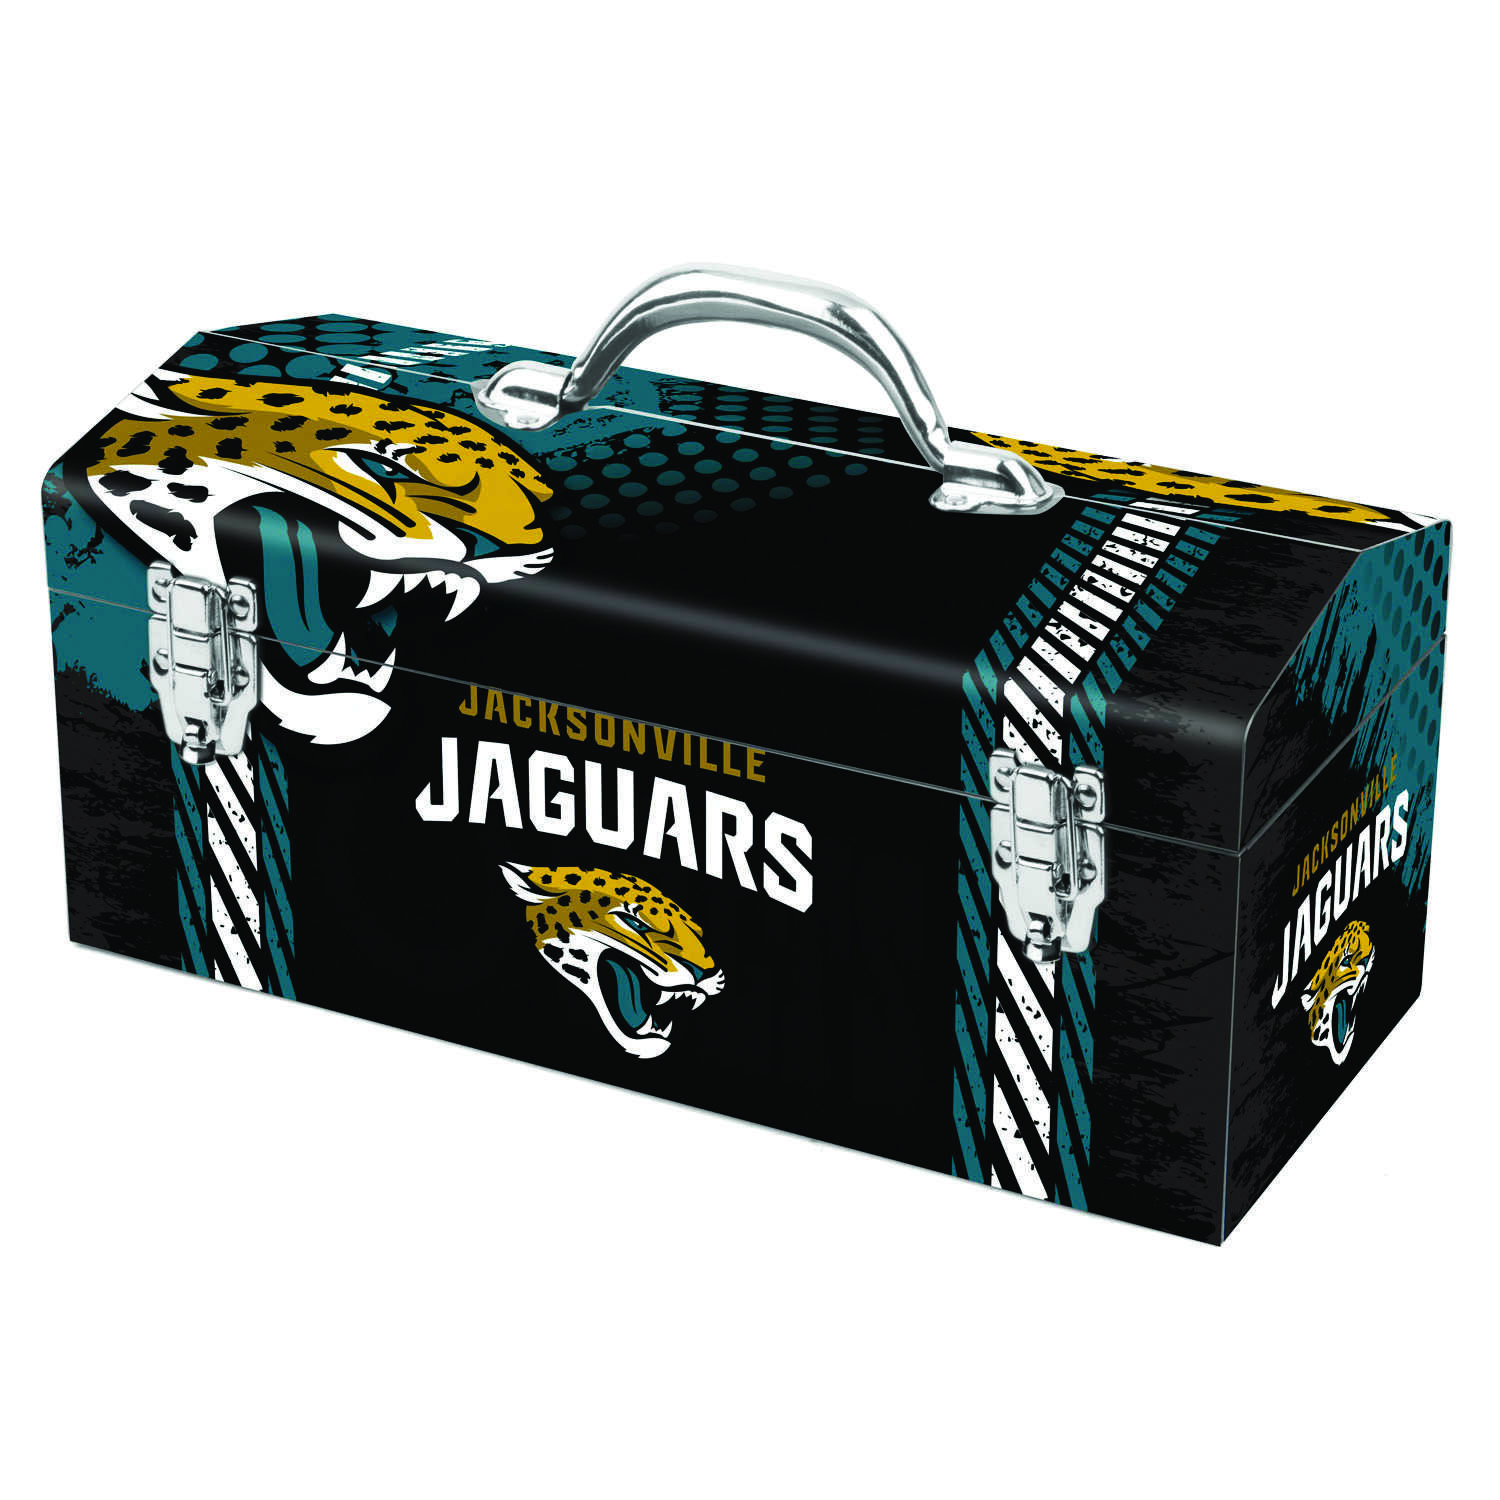 Sainty International  16.25 in. Steel  Jacksonville Jaguars  Art Deco Tool Box  7.1 in. W x 7.75 in.